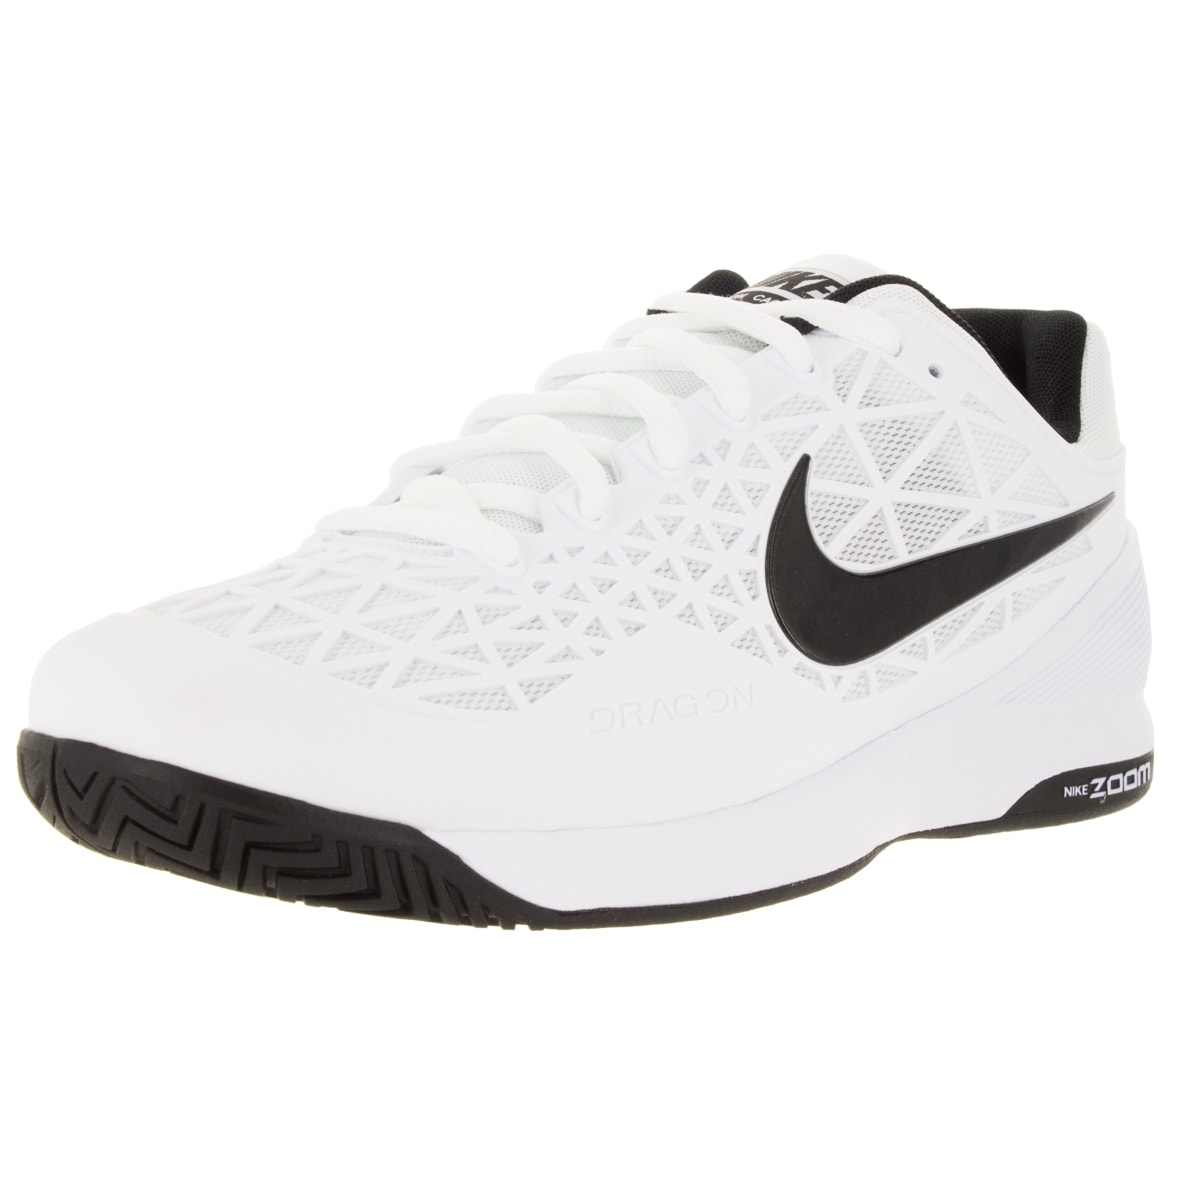 87daf74e5d9202 Shop Nike Men s Zoom Cage 2 White Black Cool Grey Tennis Shoe - Free  Shipping Today - Overstock.com - 12329256